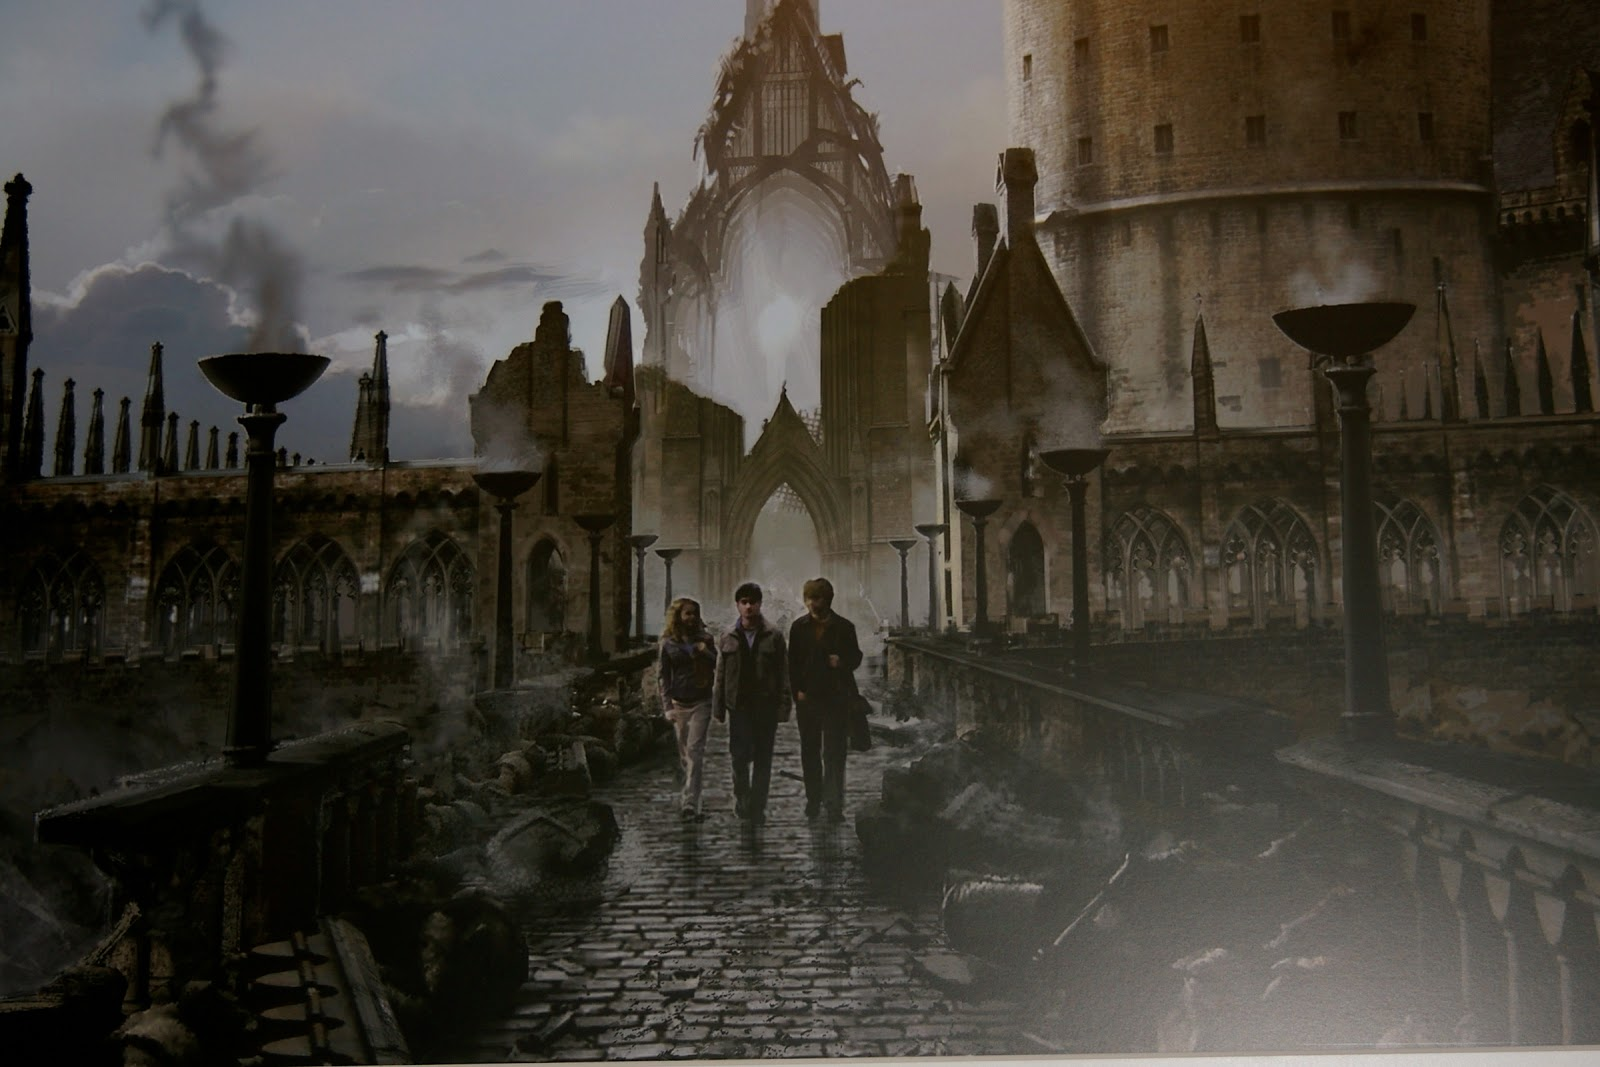 Castle Blueprint The Boy Who Will Always Live A Trip To London And The